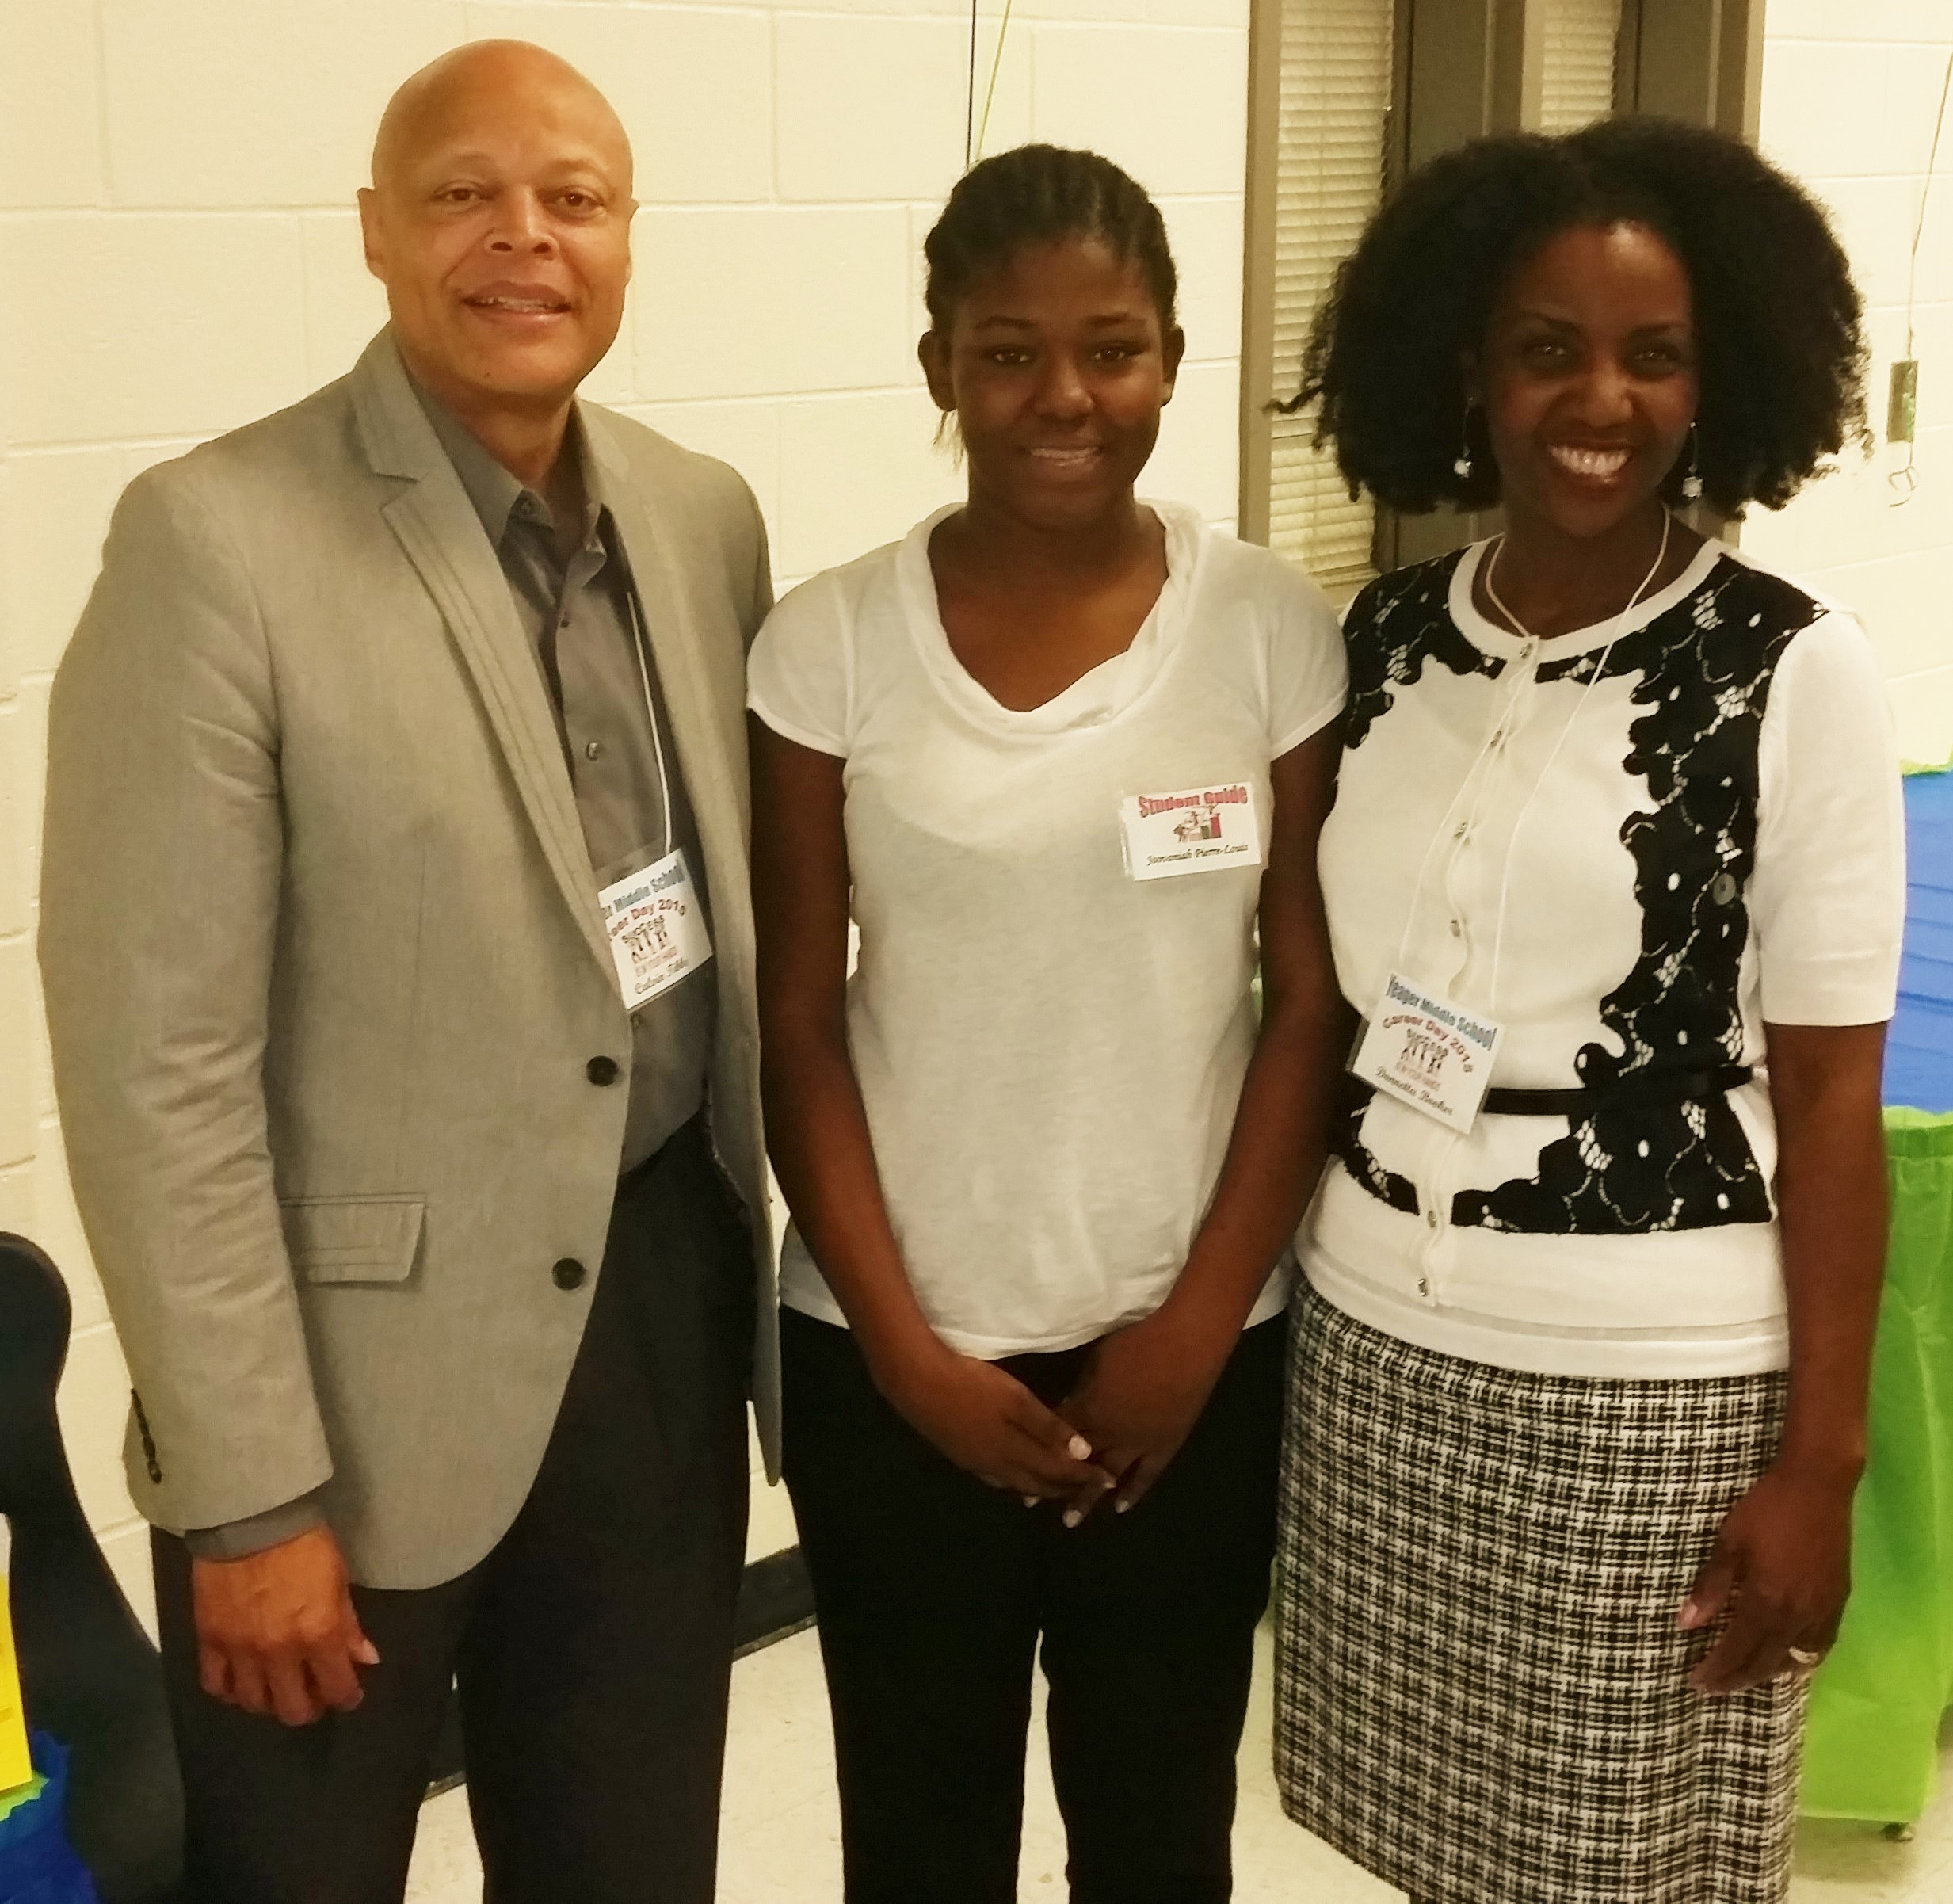 With my room partner, Pastor Calvin Tibbs of Kingdom Dominion Church in Villa Rica, and our lovely student guide.  She took great care of us.